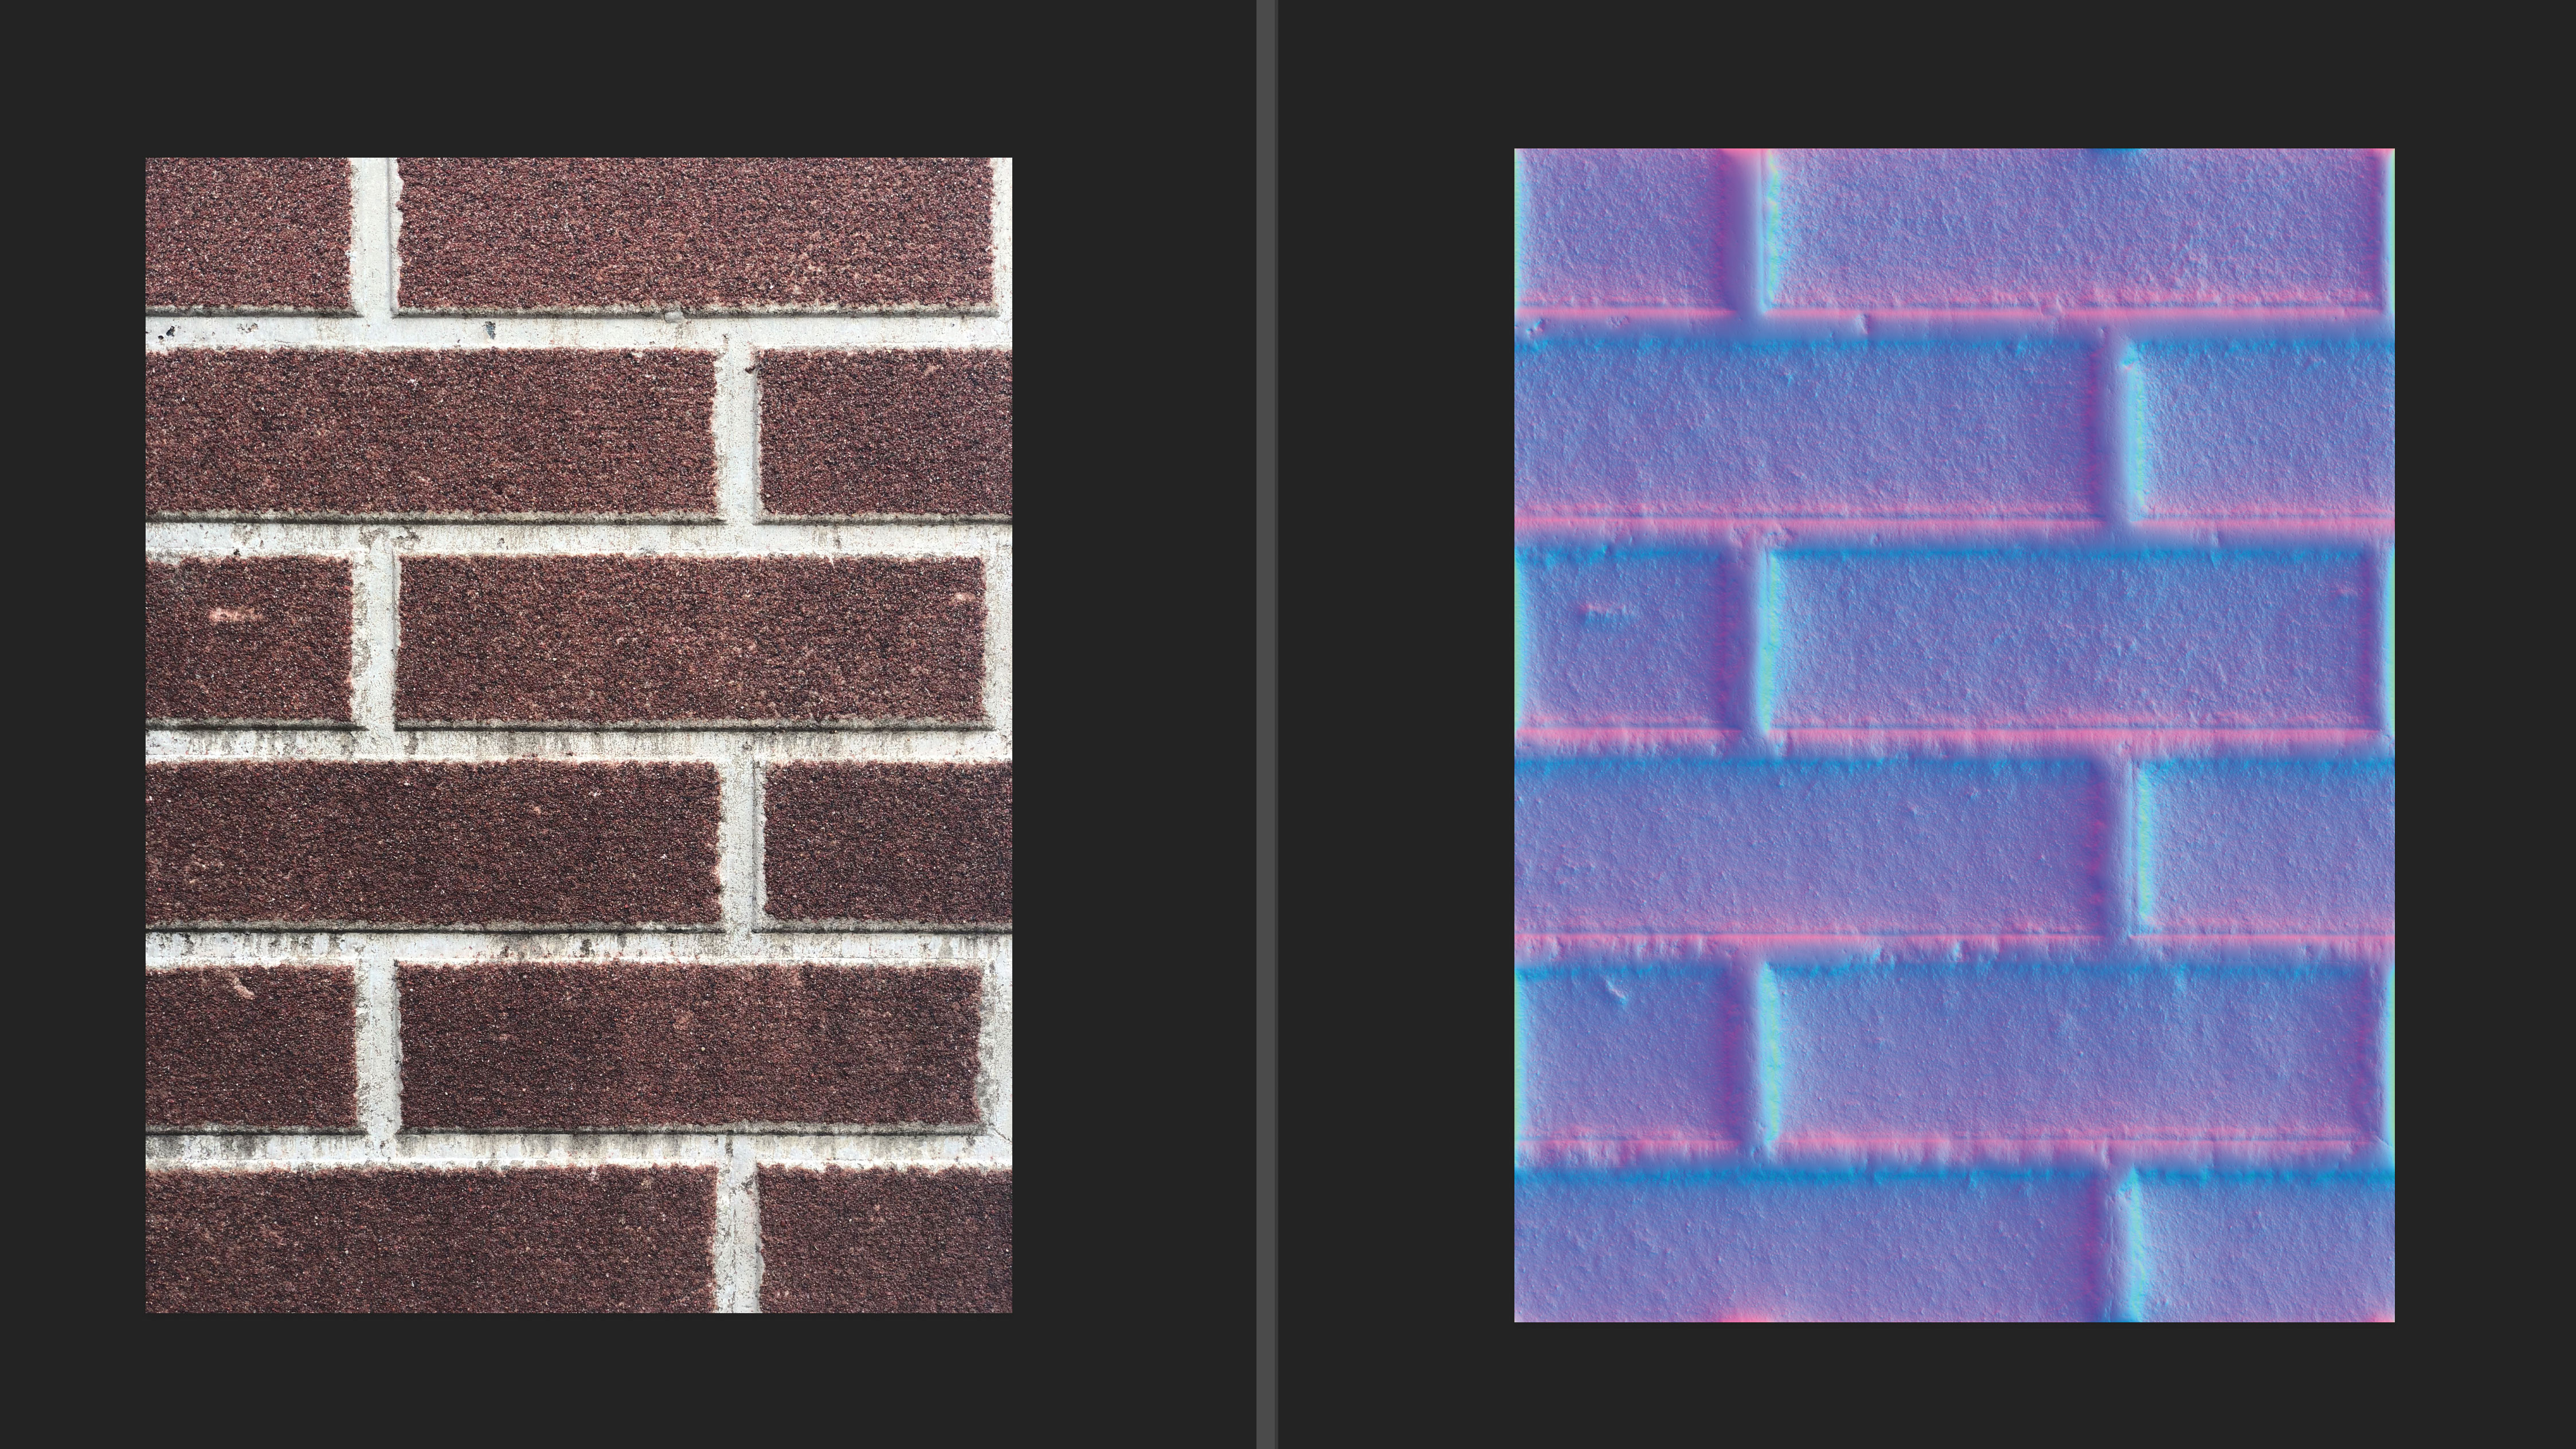 A photo of a brick wall converted into a normal map